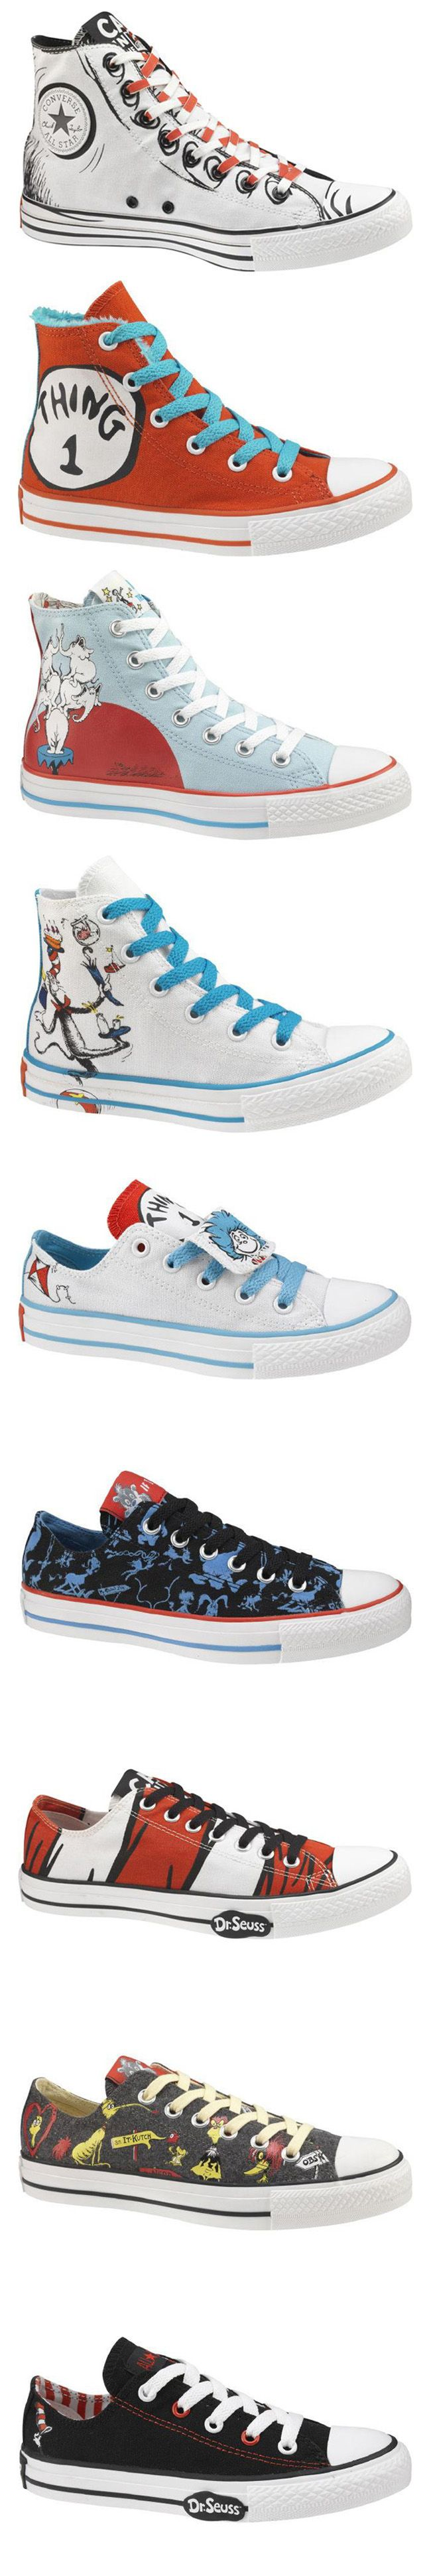 Converse Chuck Taylor x Dr. Seuss Collection